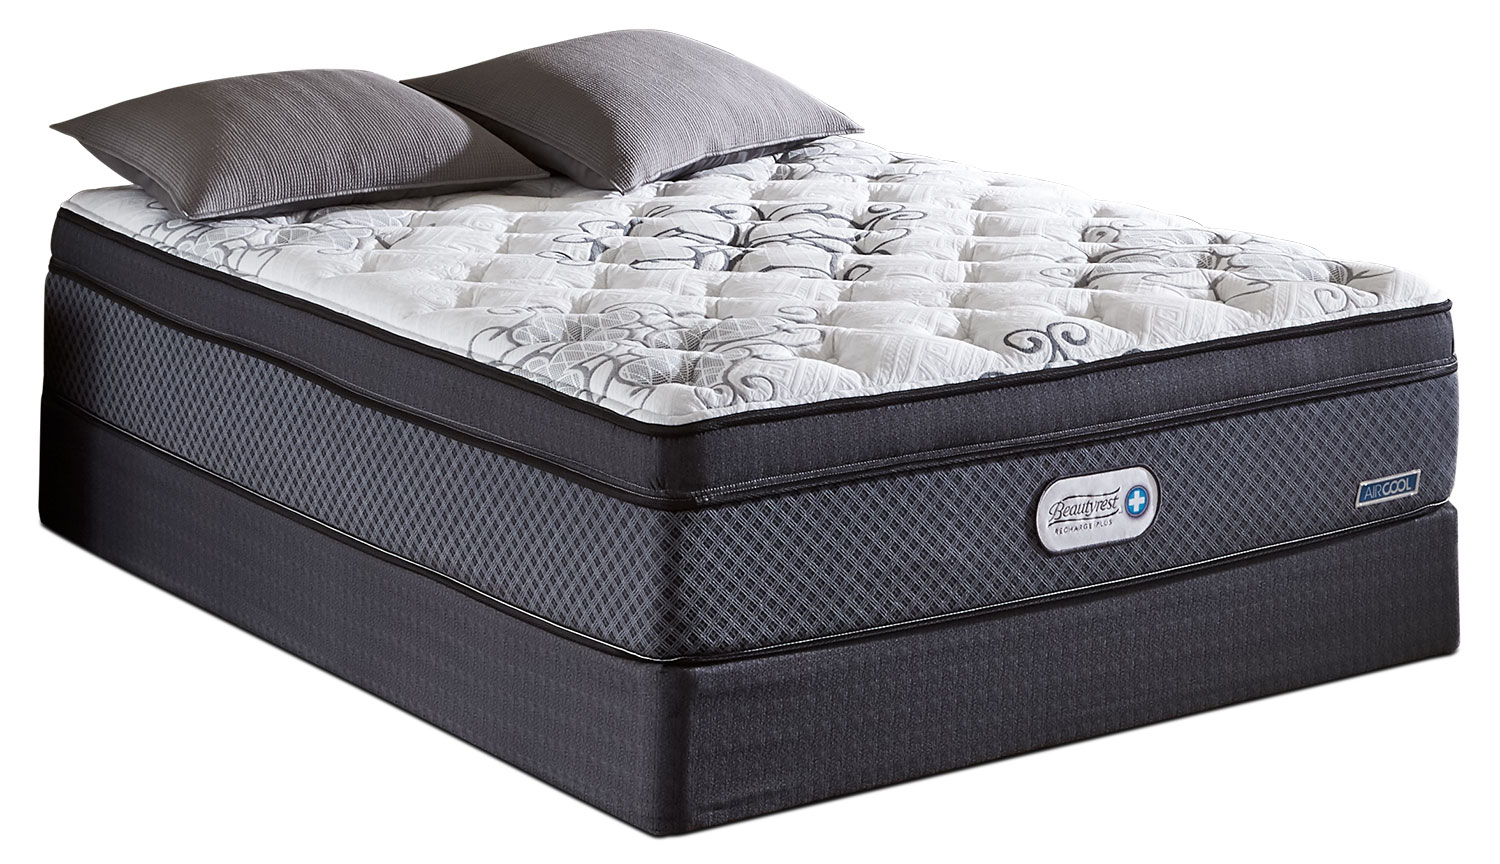 Beautyrest Recharge Plus Covington Euro-Top Luxury Firm Twin Mattress Set